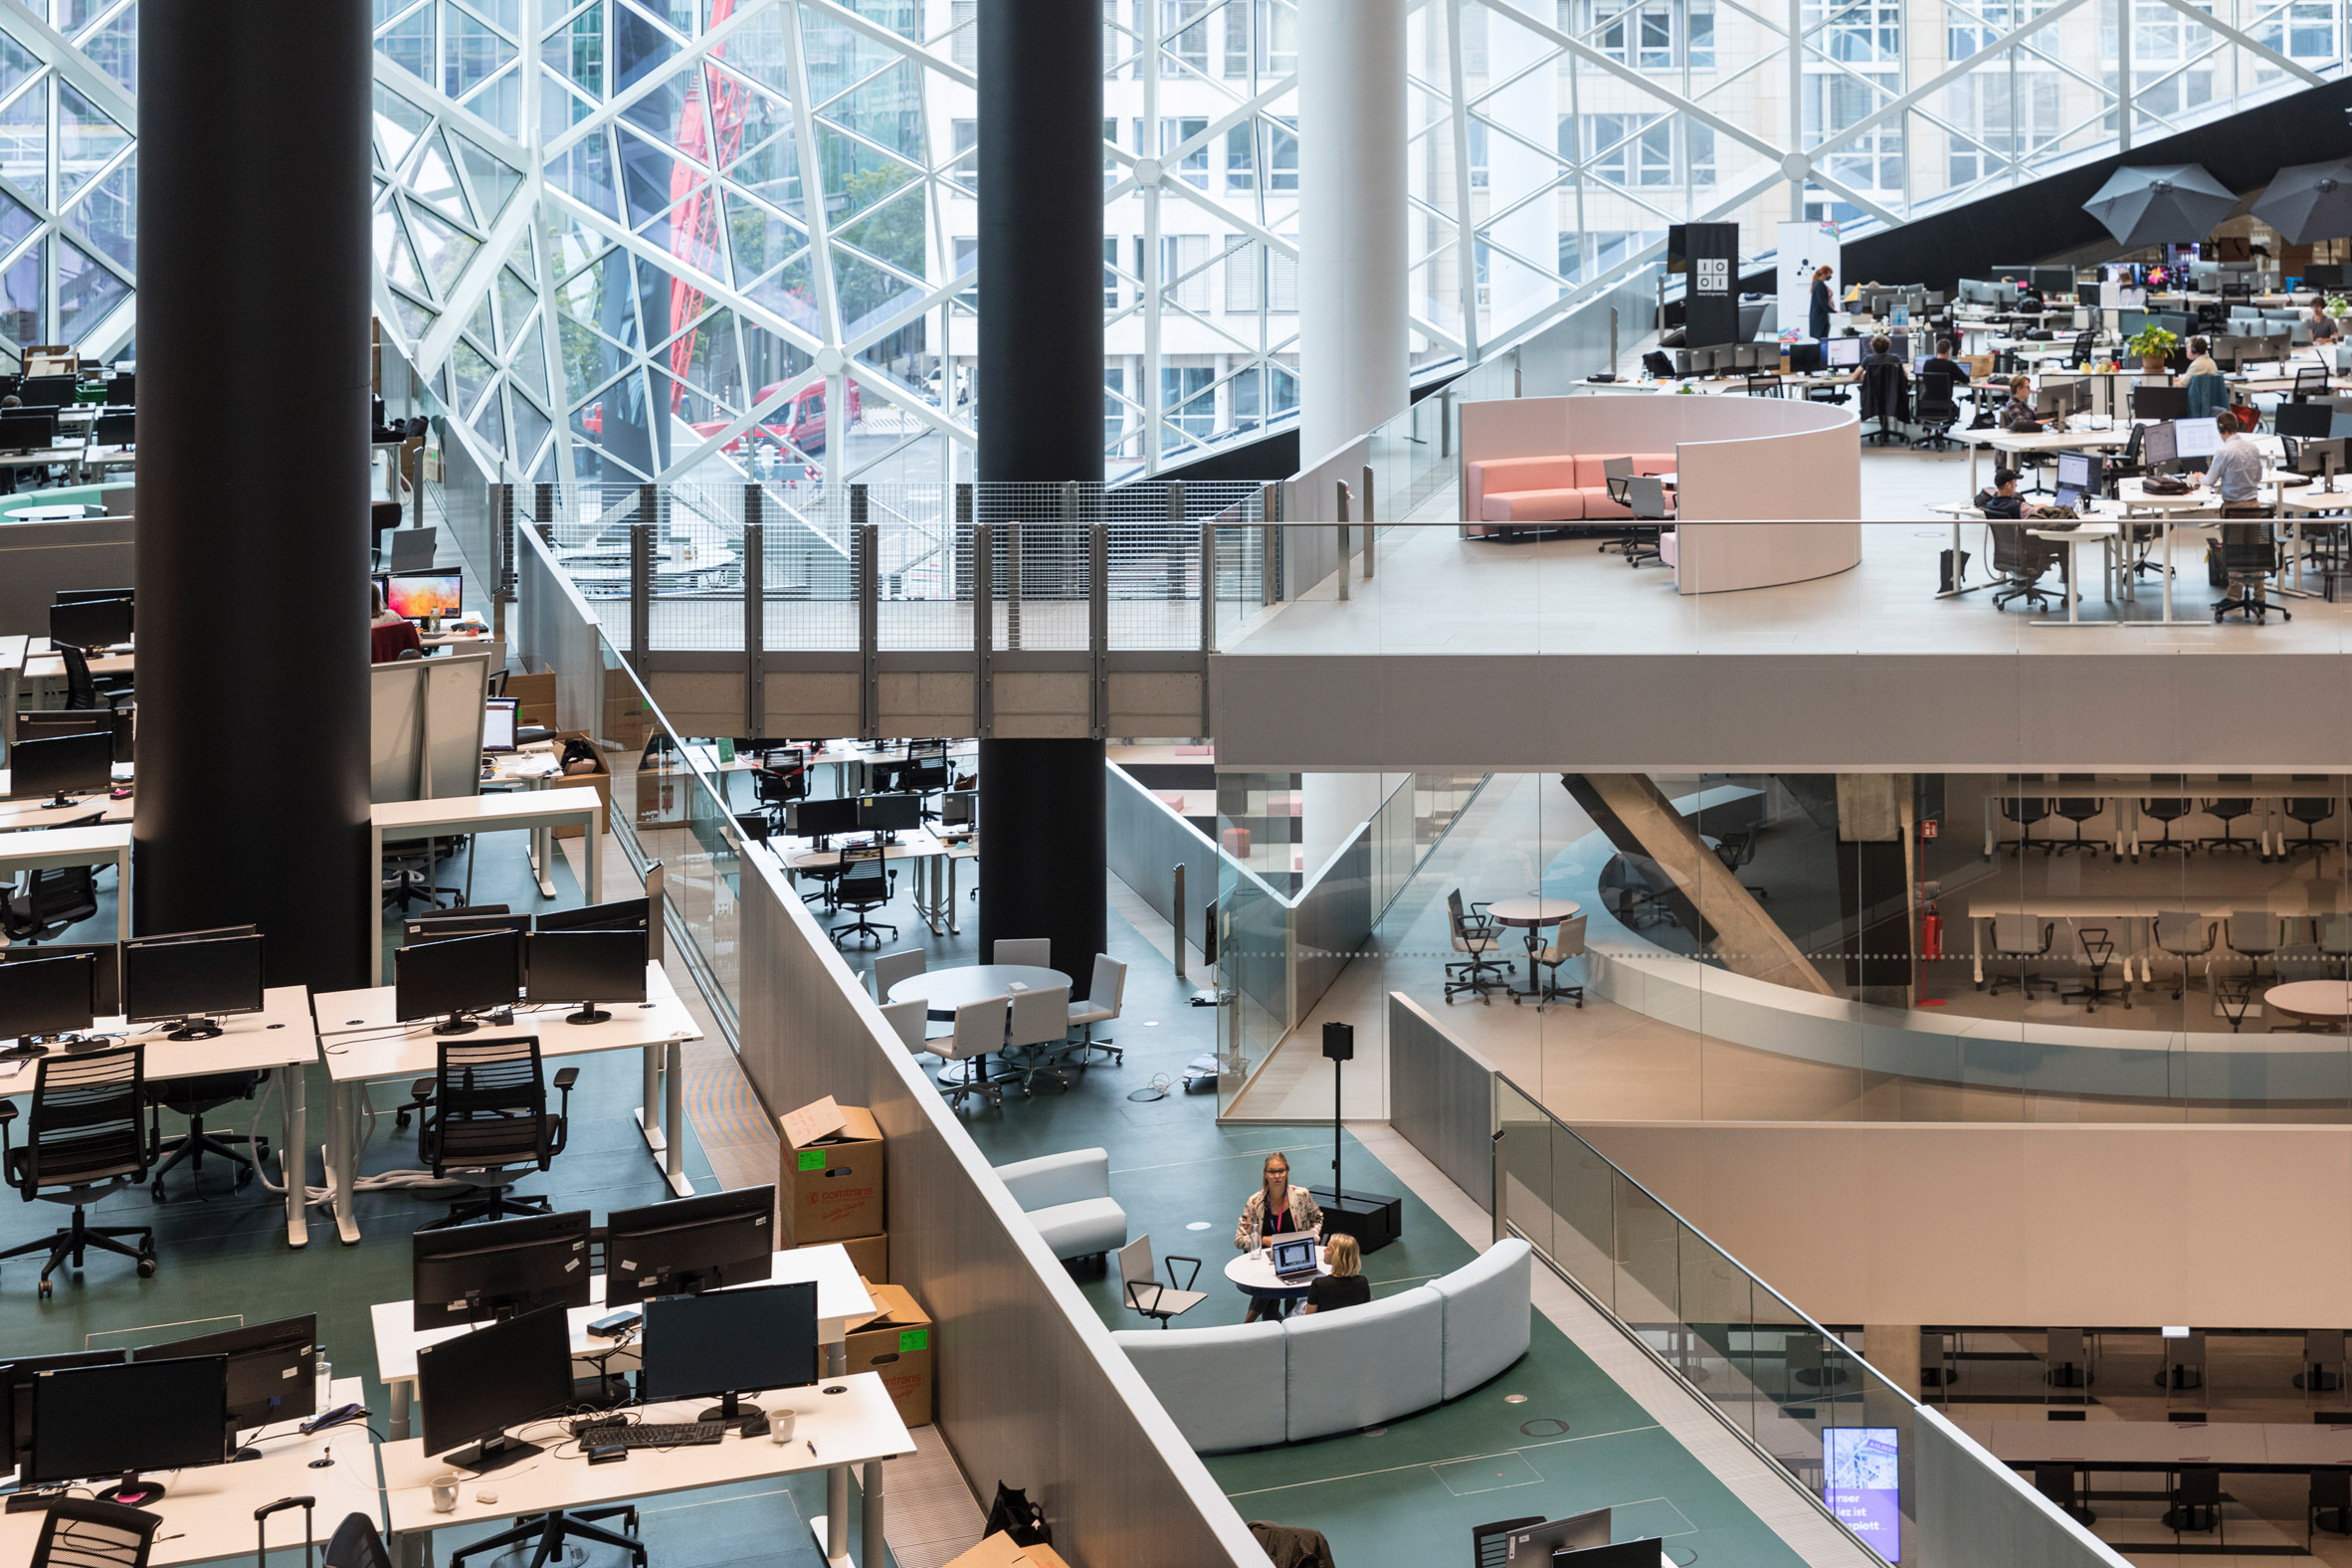 Interior of Axel Springer building by OMA in Berlin, Germany